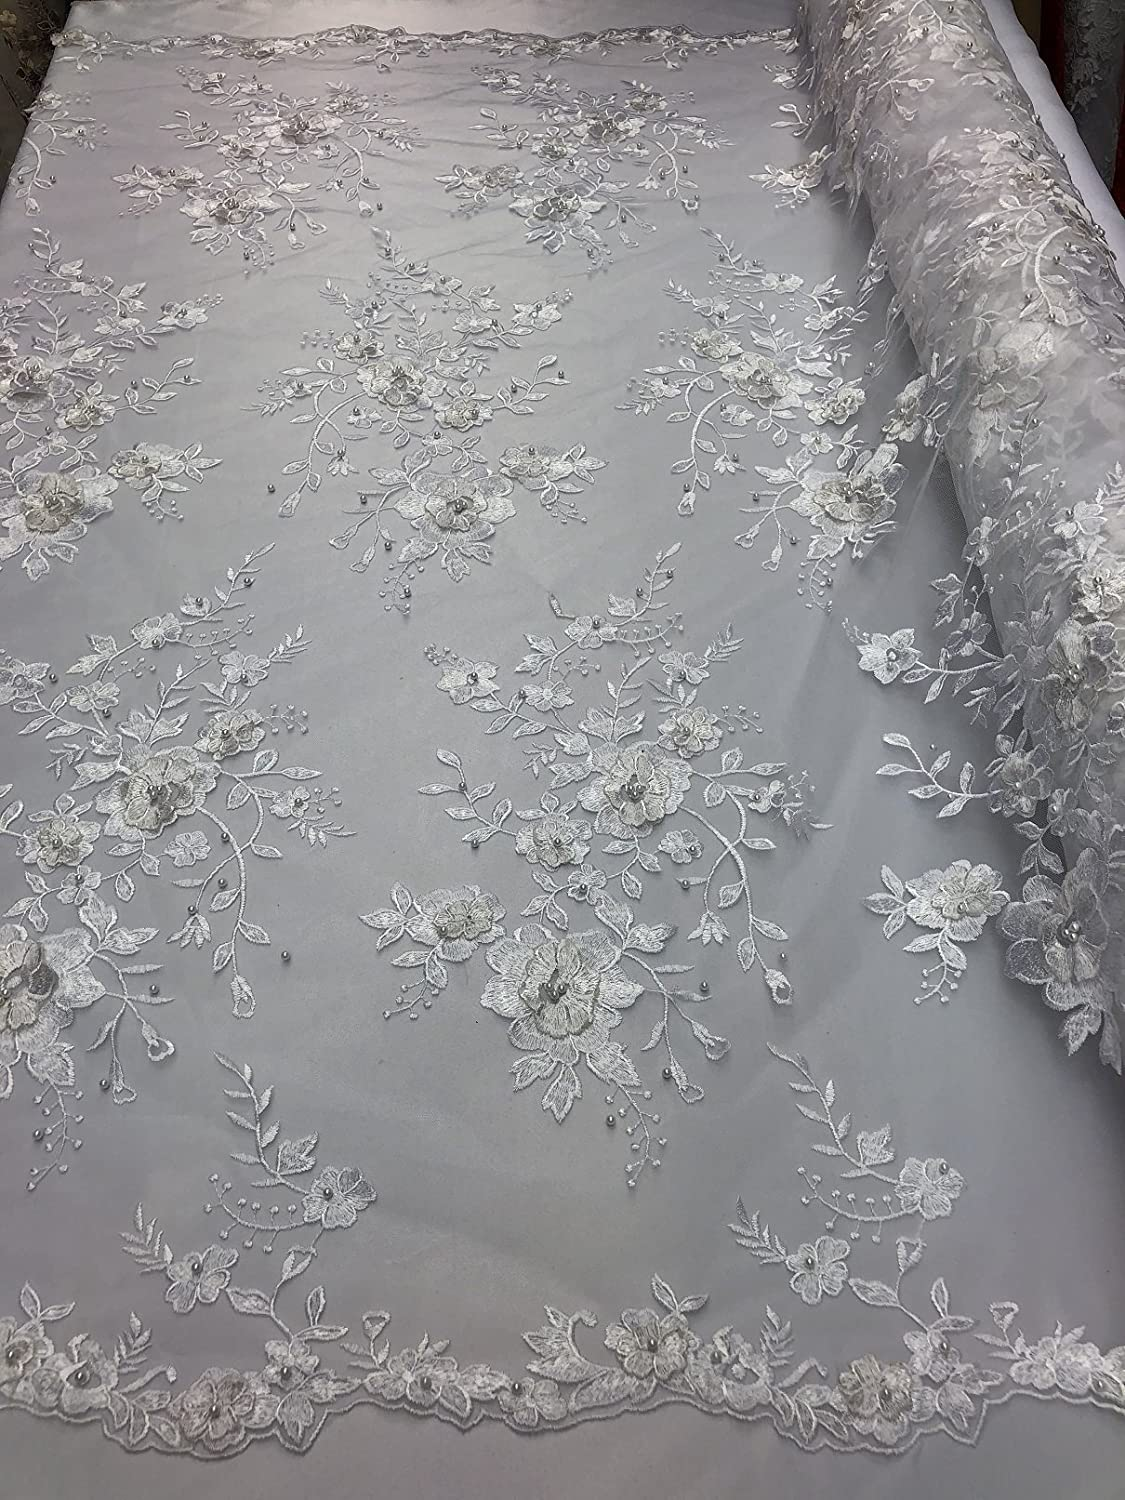 WHITE FLORAL BEADED DESIGN EMBROIDER WITH SEQUINS ON A MESH LACE-SOLD BY YARD